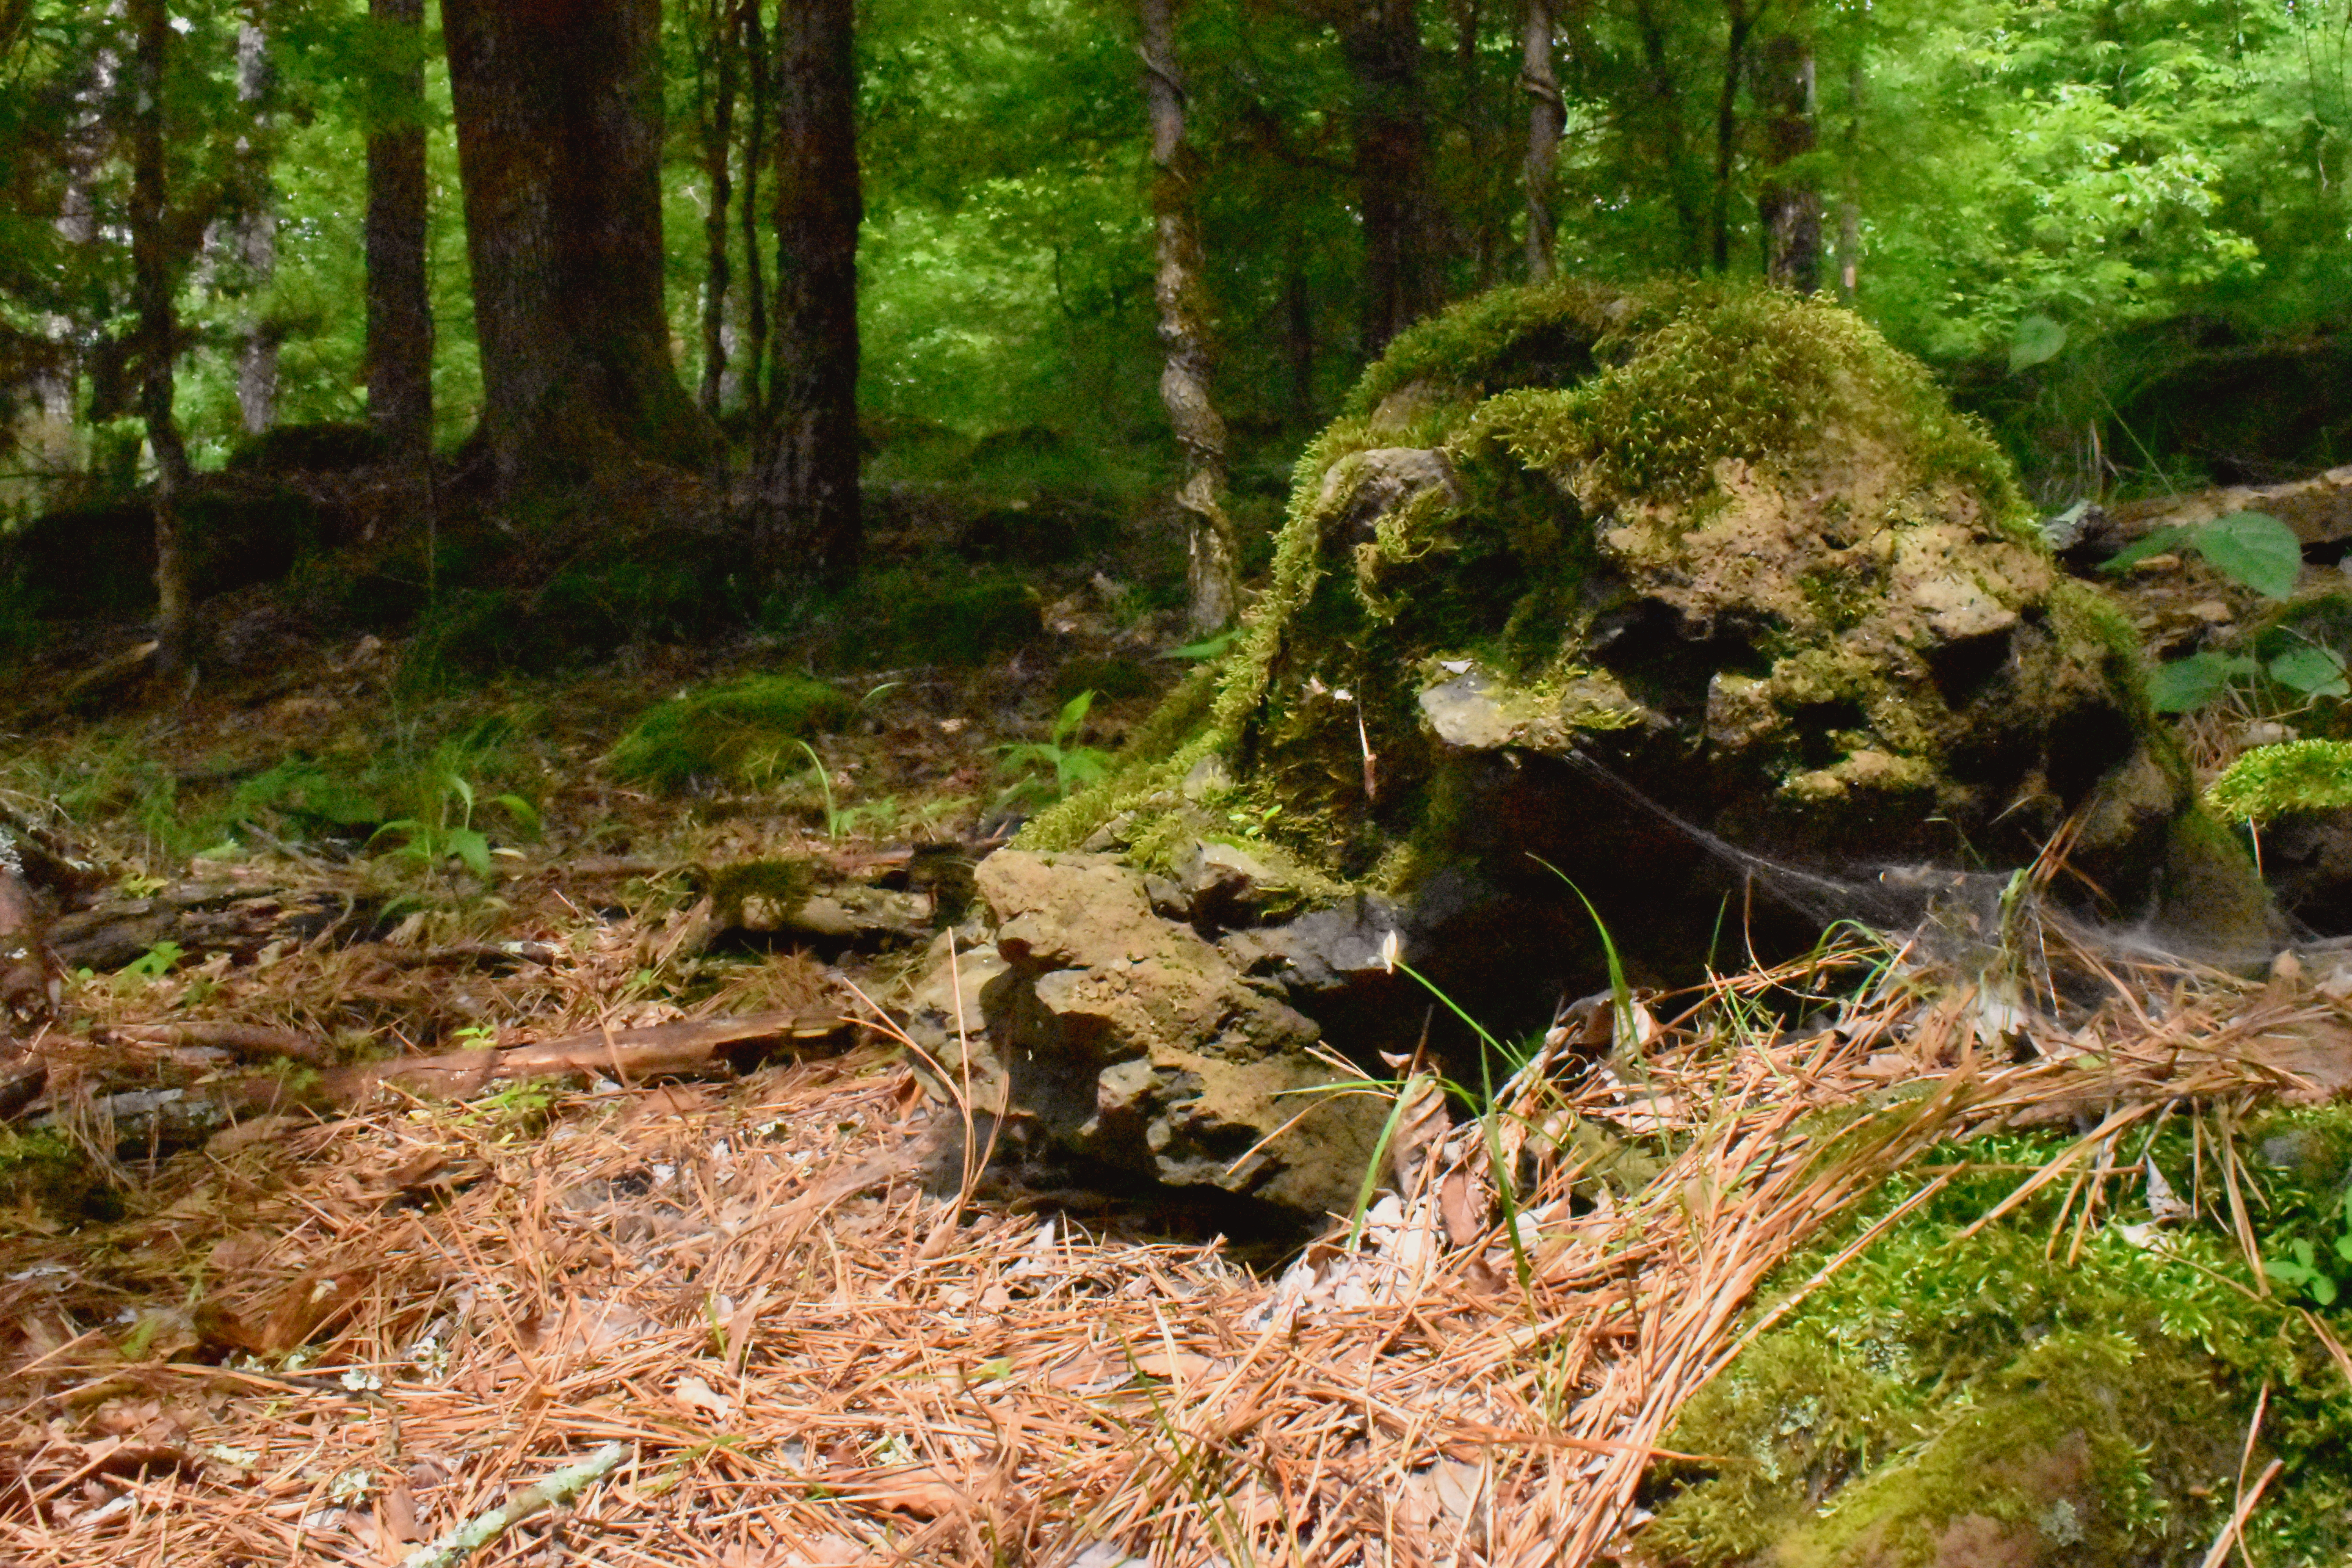 A moss-covered boulder in a hardwood forest.